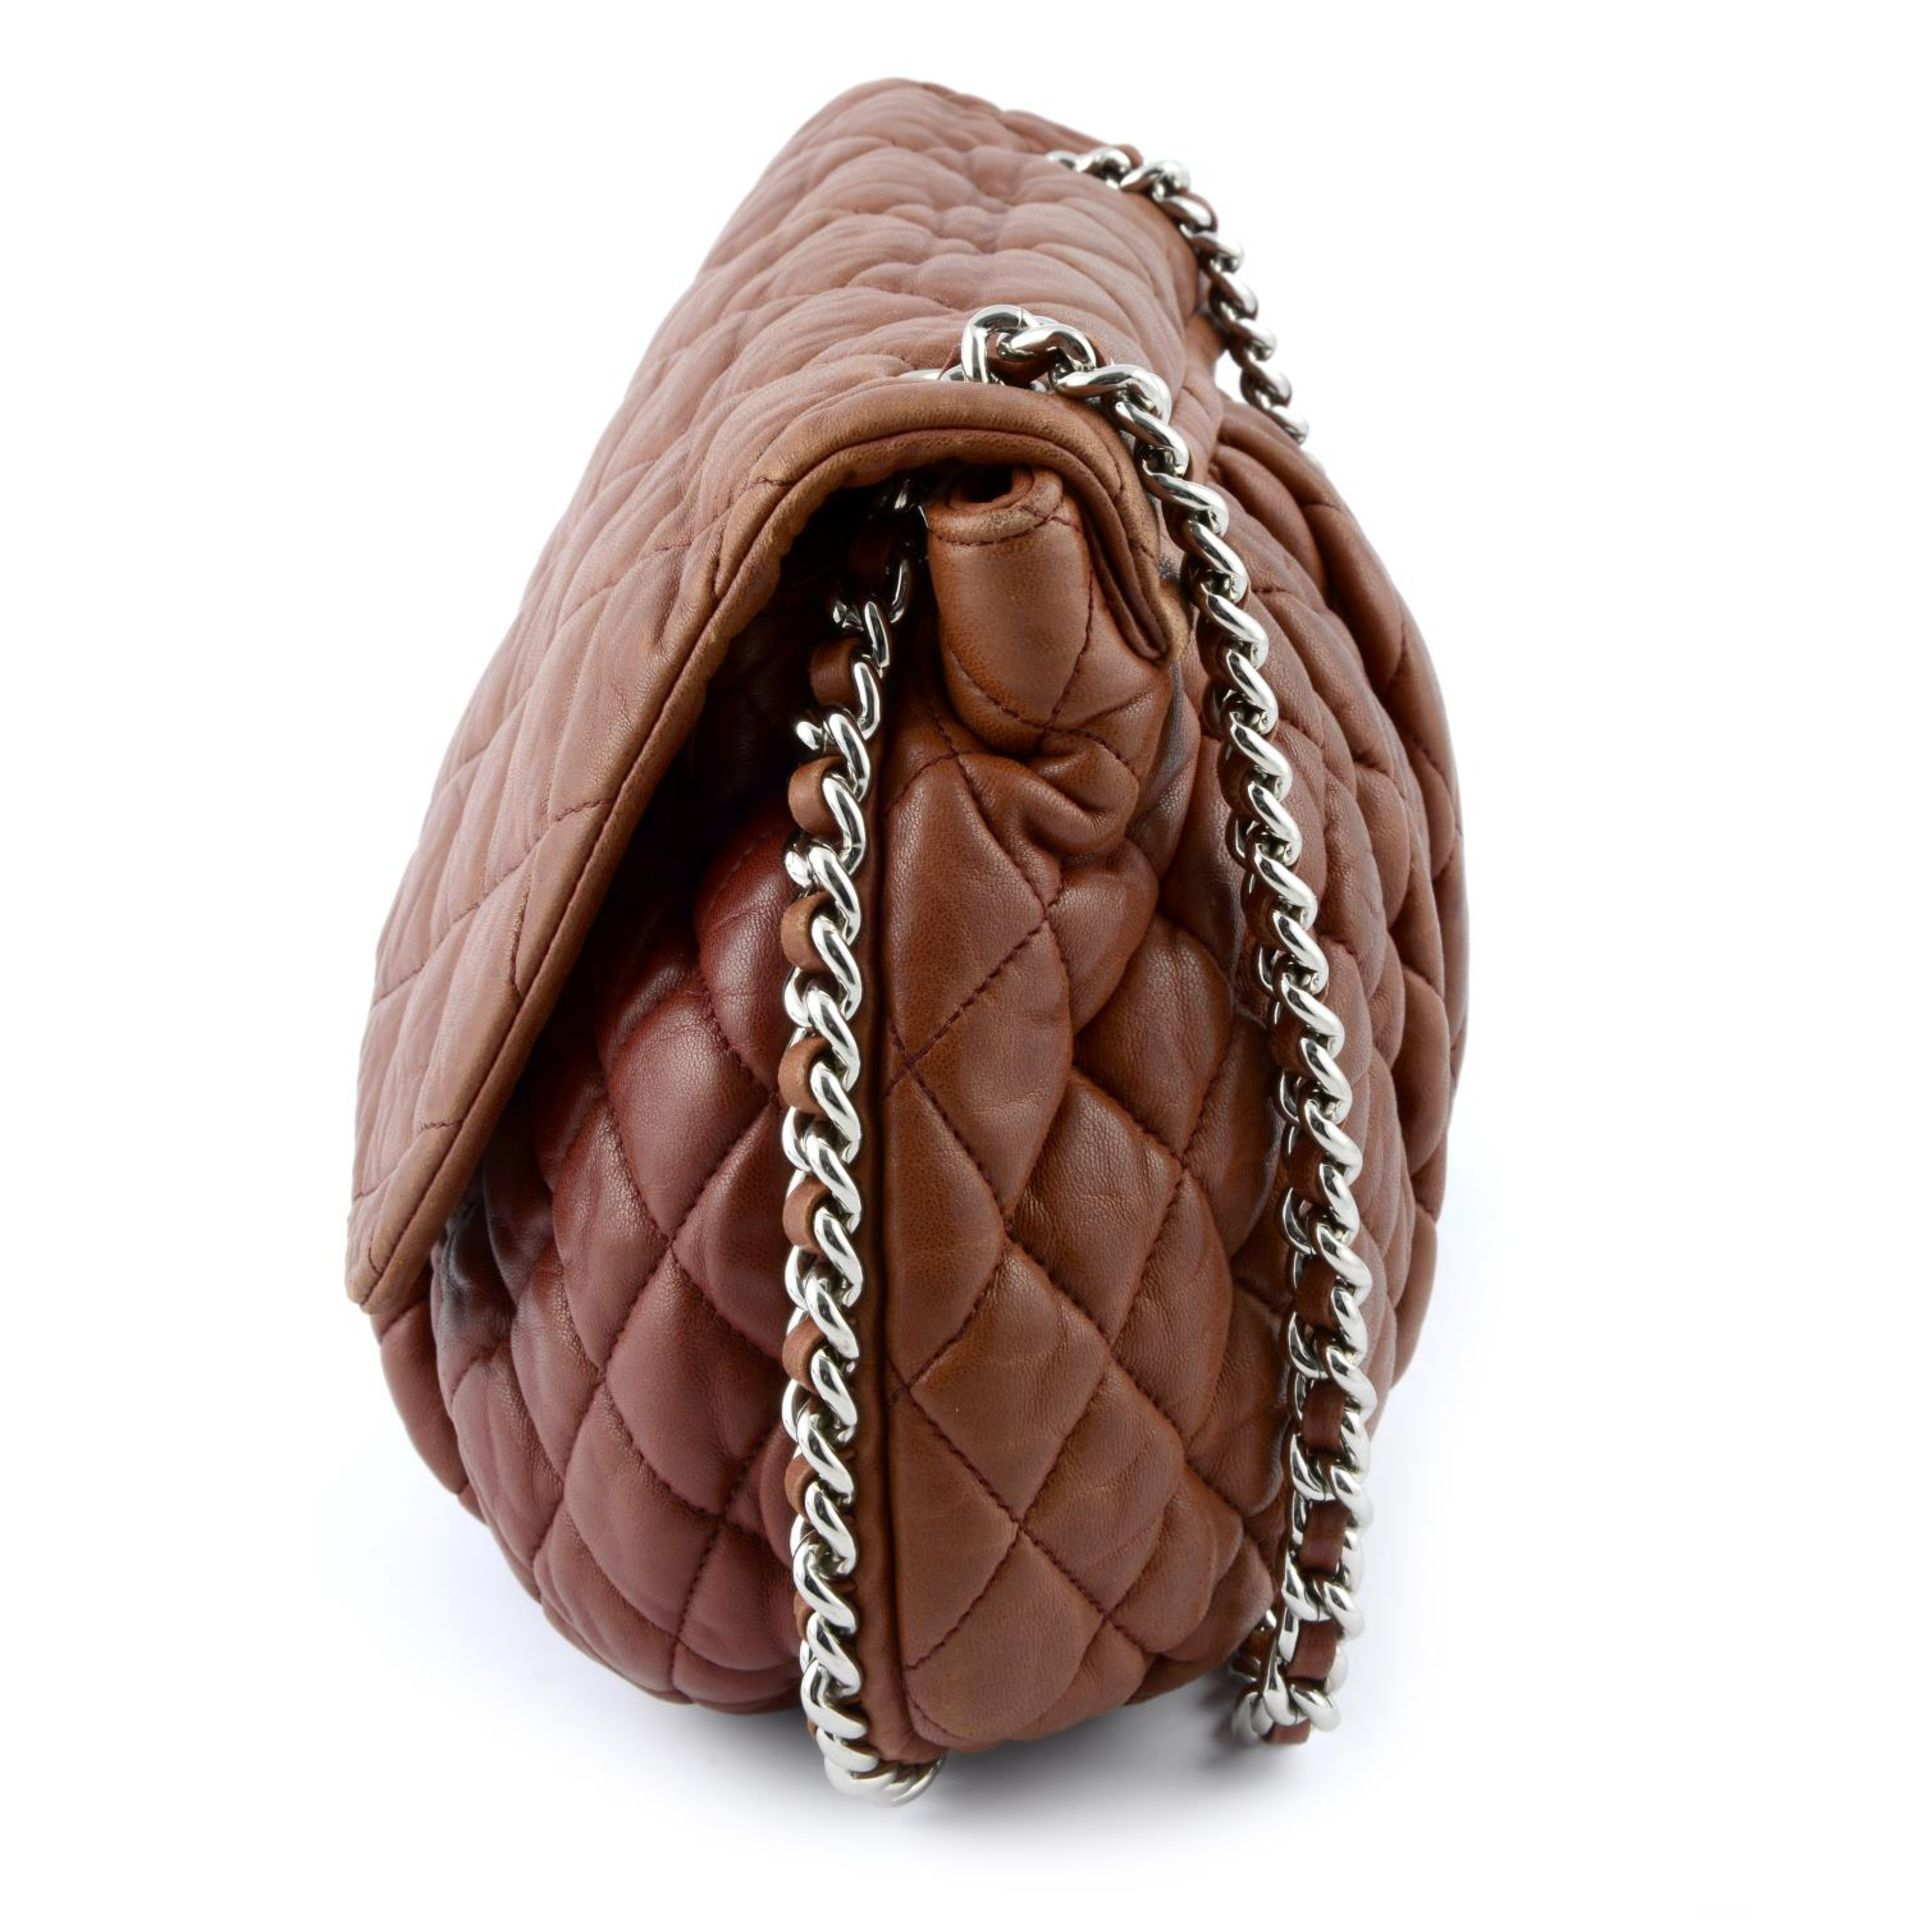 CHANEL - a quilted lambskin leather chain around handbag. - Image 3 of 4